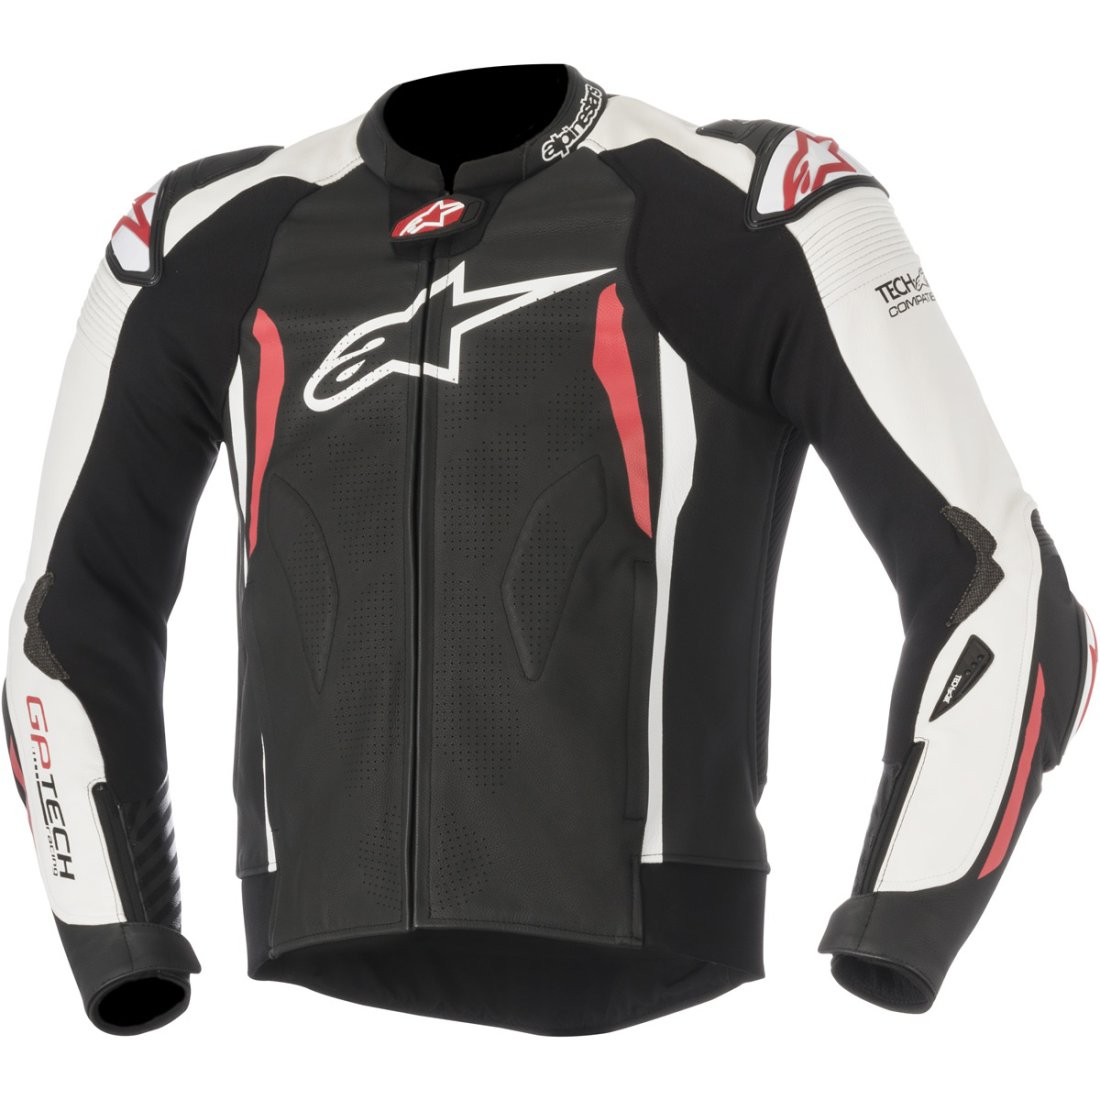 63afbaa76c0 Chaqueta ALPINESTARS Gp Tech V2 for Tech-Air Black   White   Red · Motocard